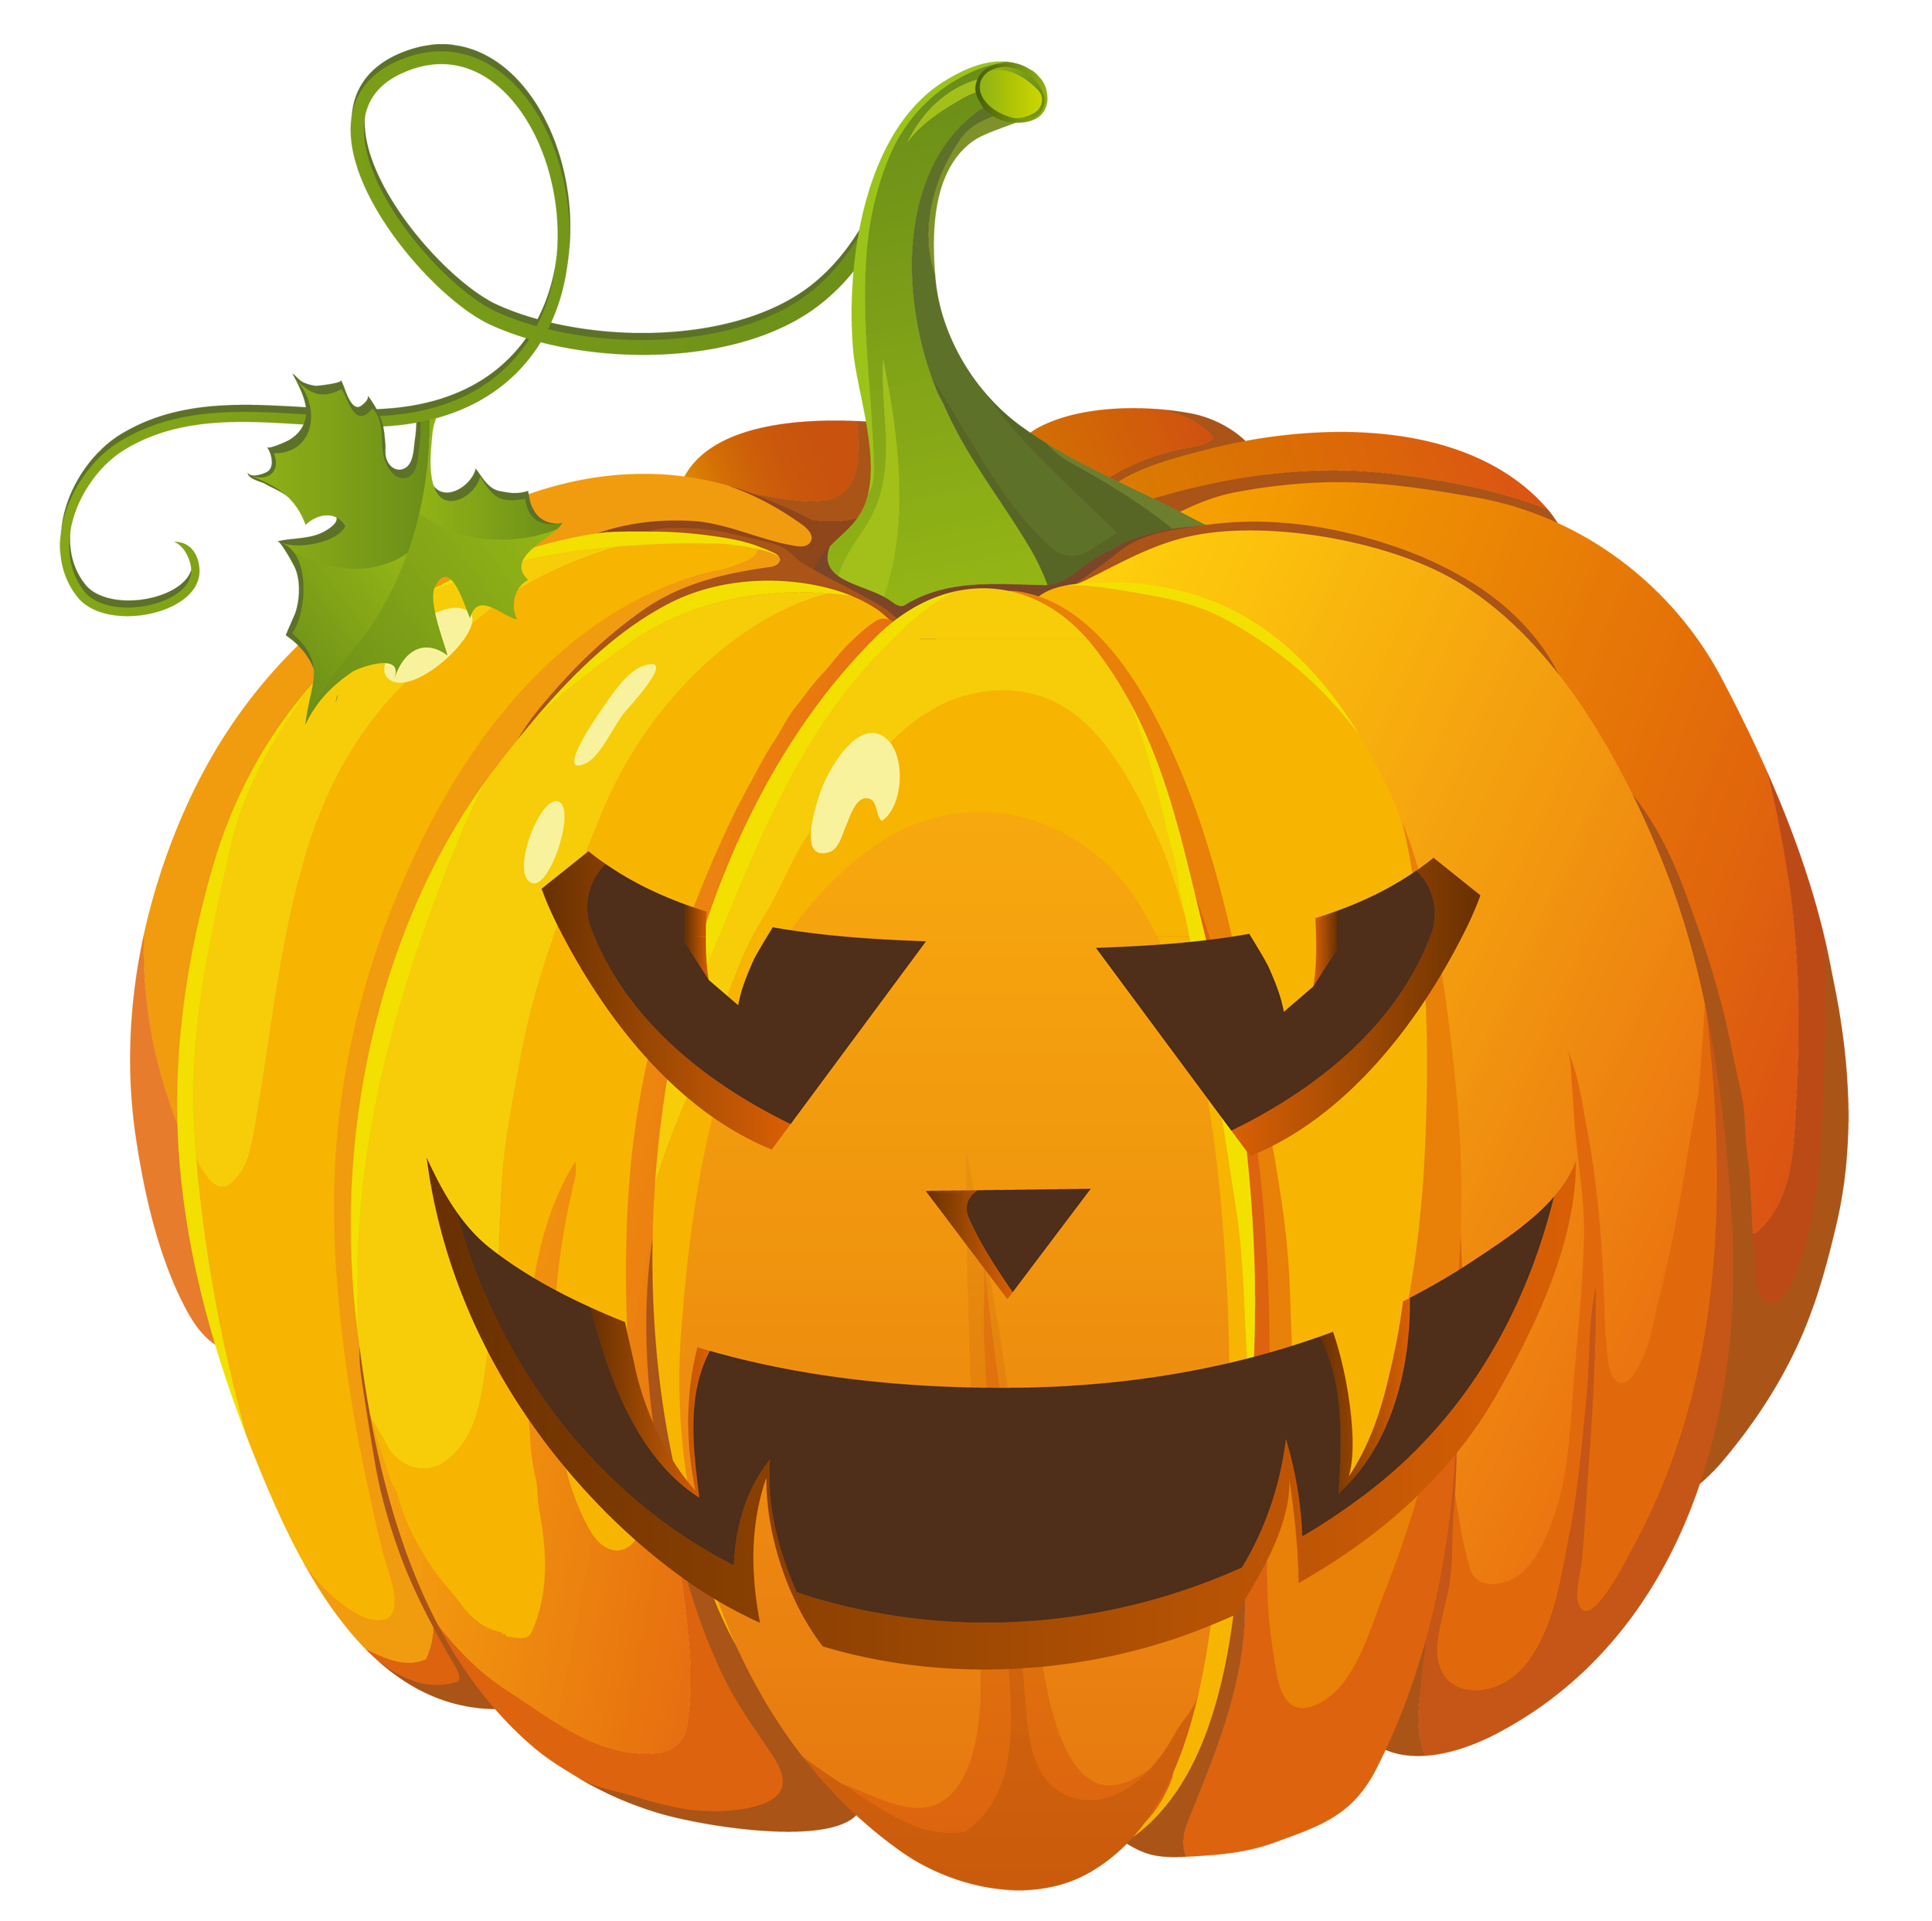 Party music from the. Scary clipart scary pumpkin patch picture library library